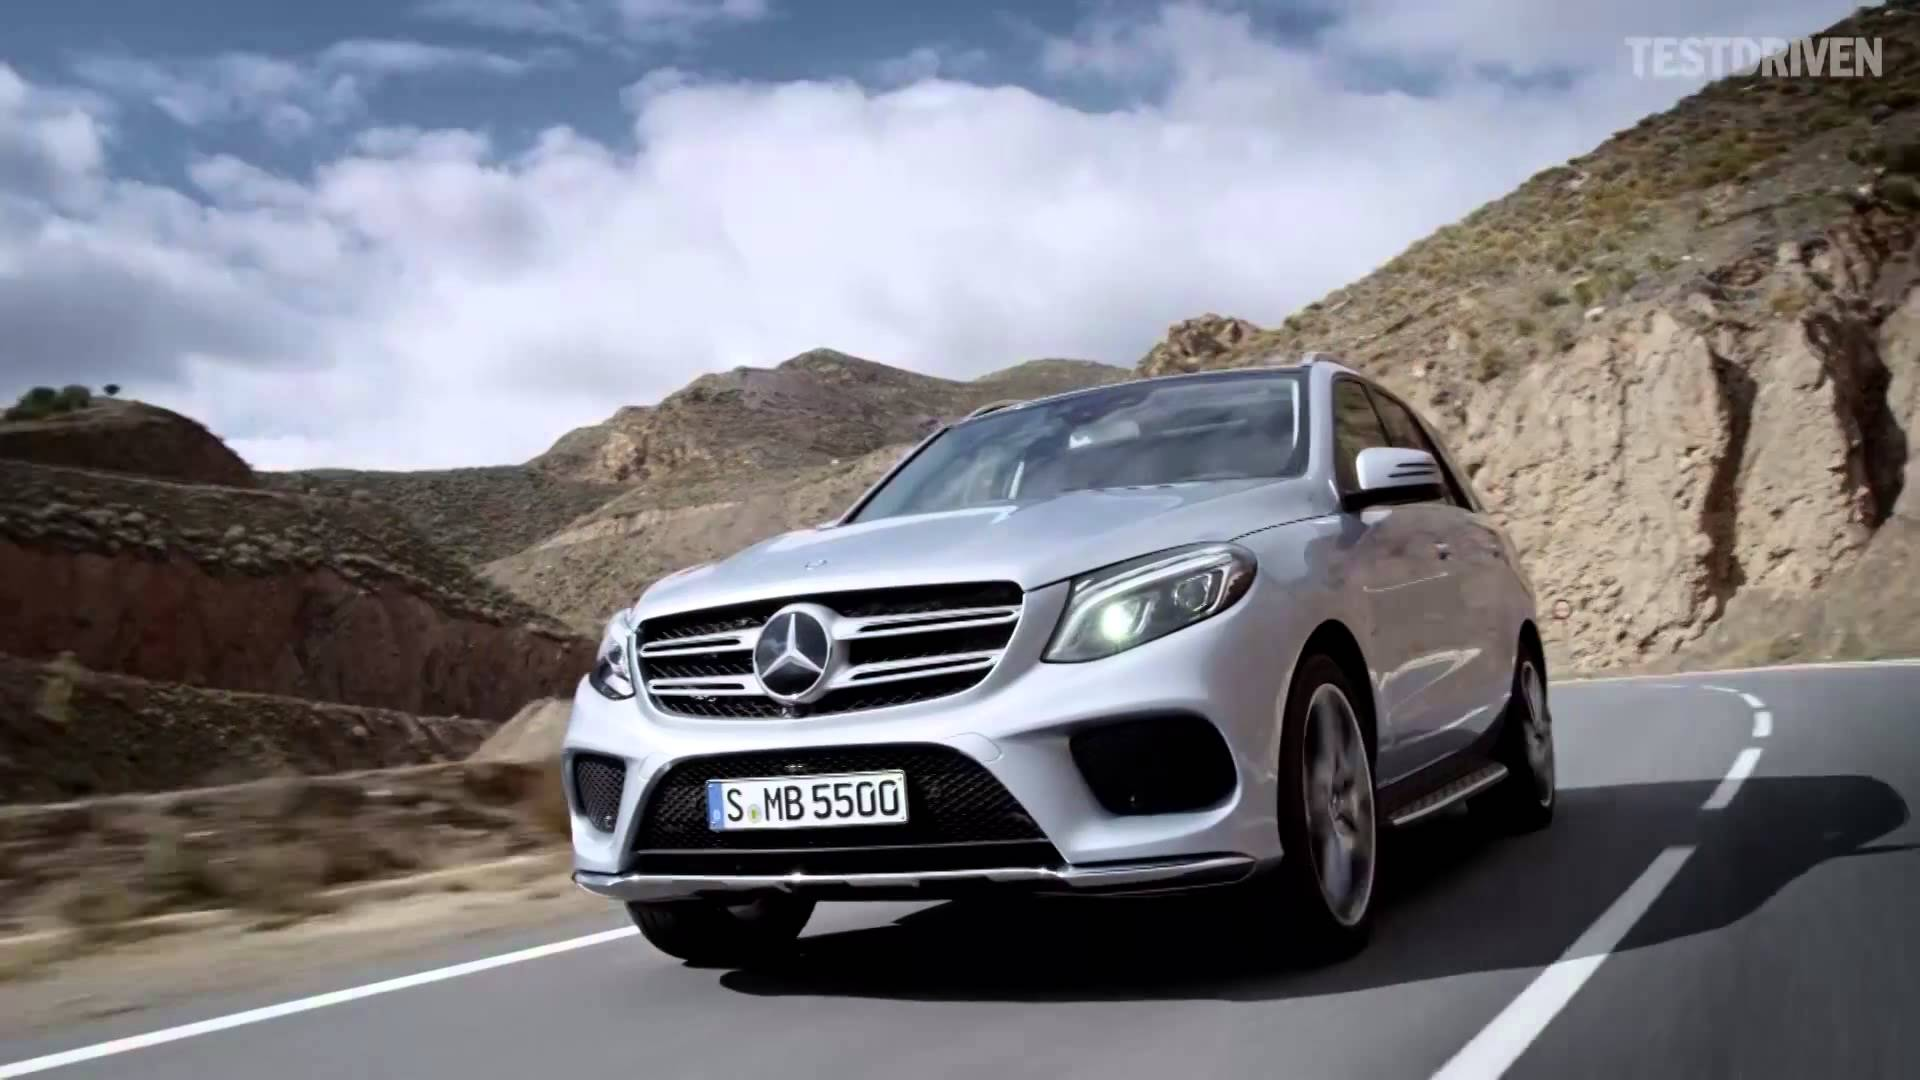 Mercedes GLE400 4MATIC 2017 10